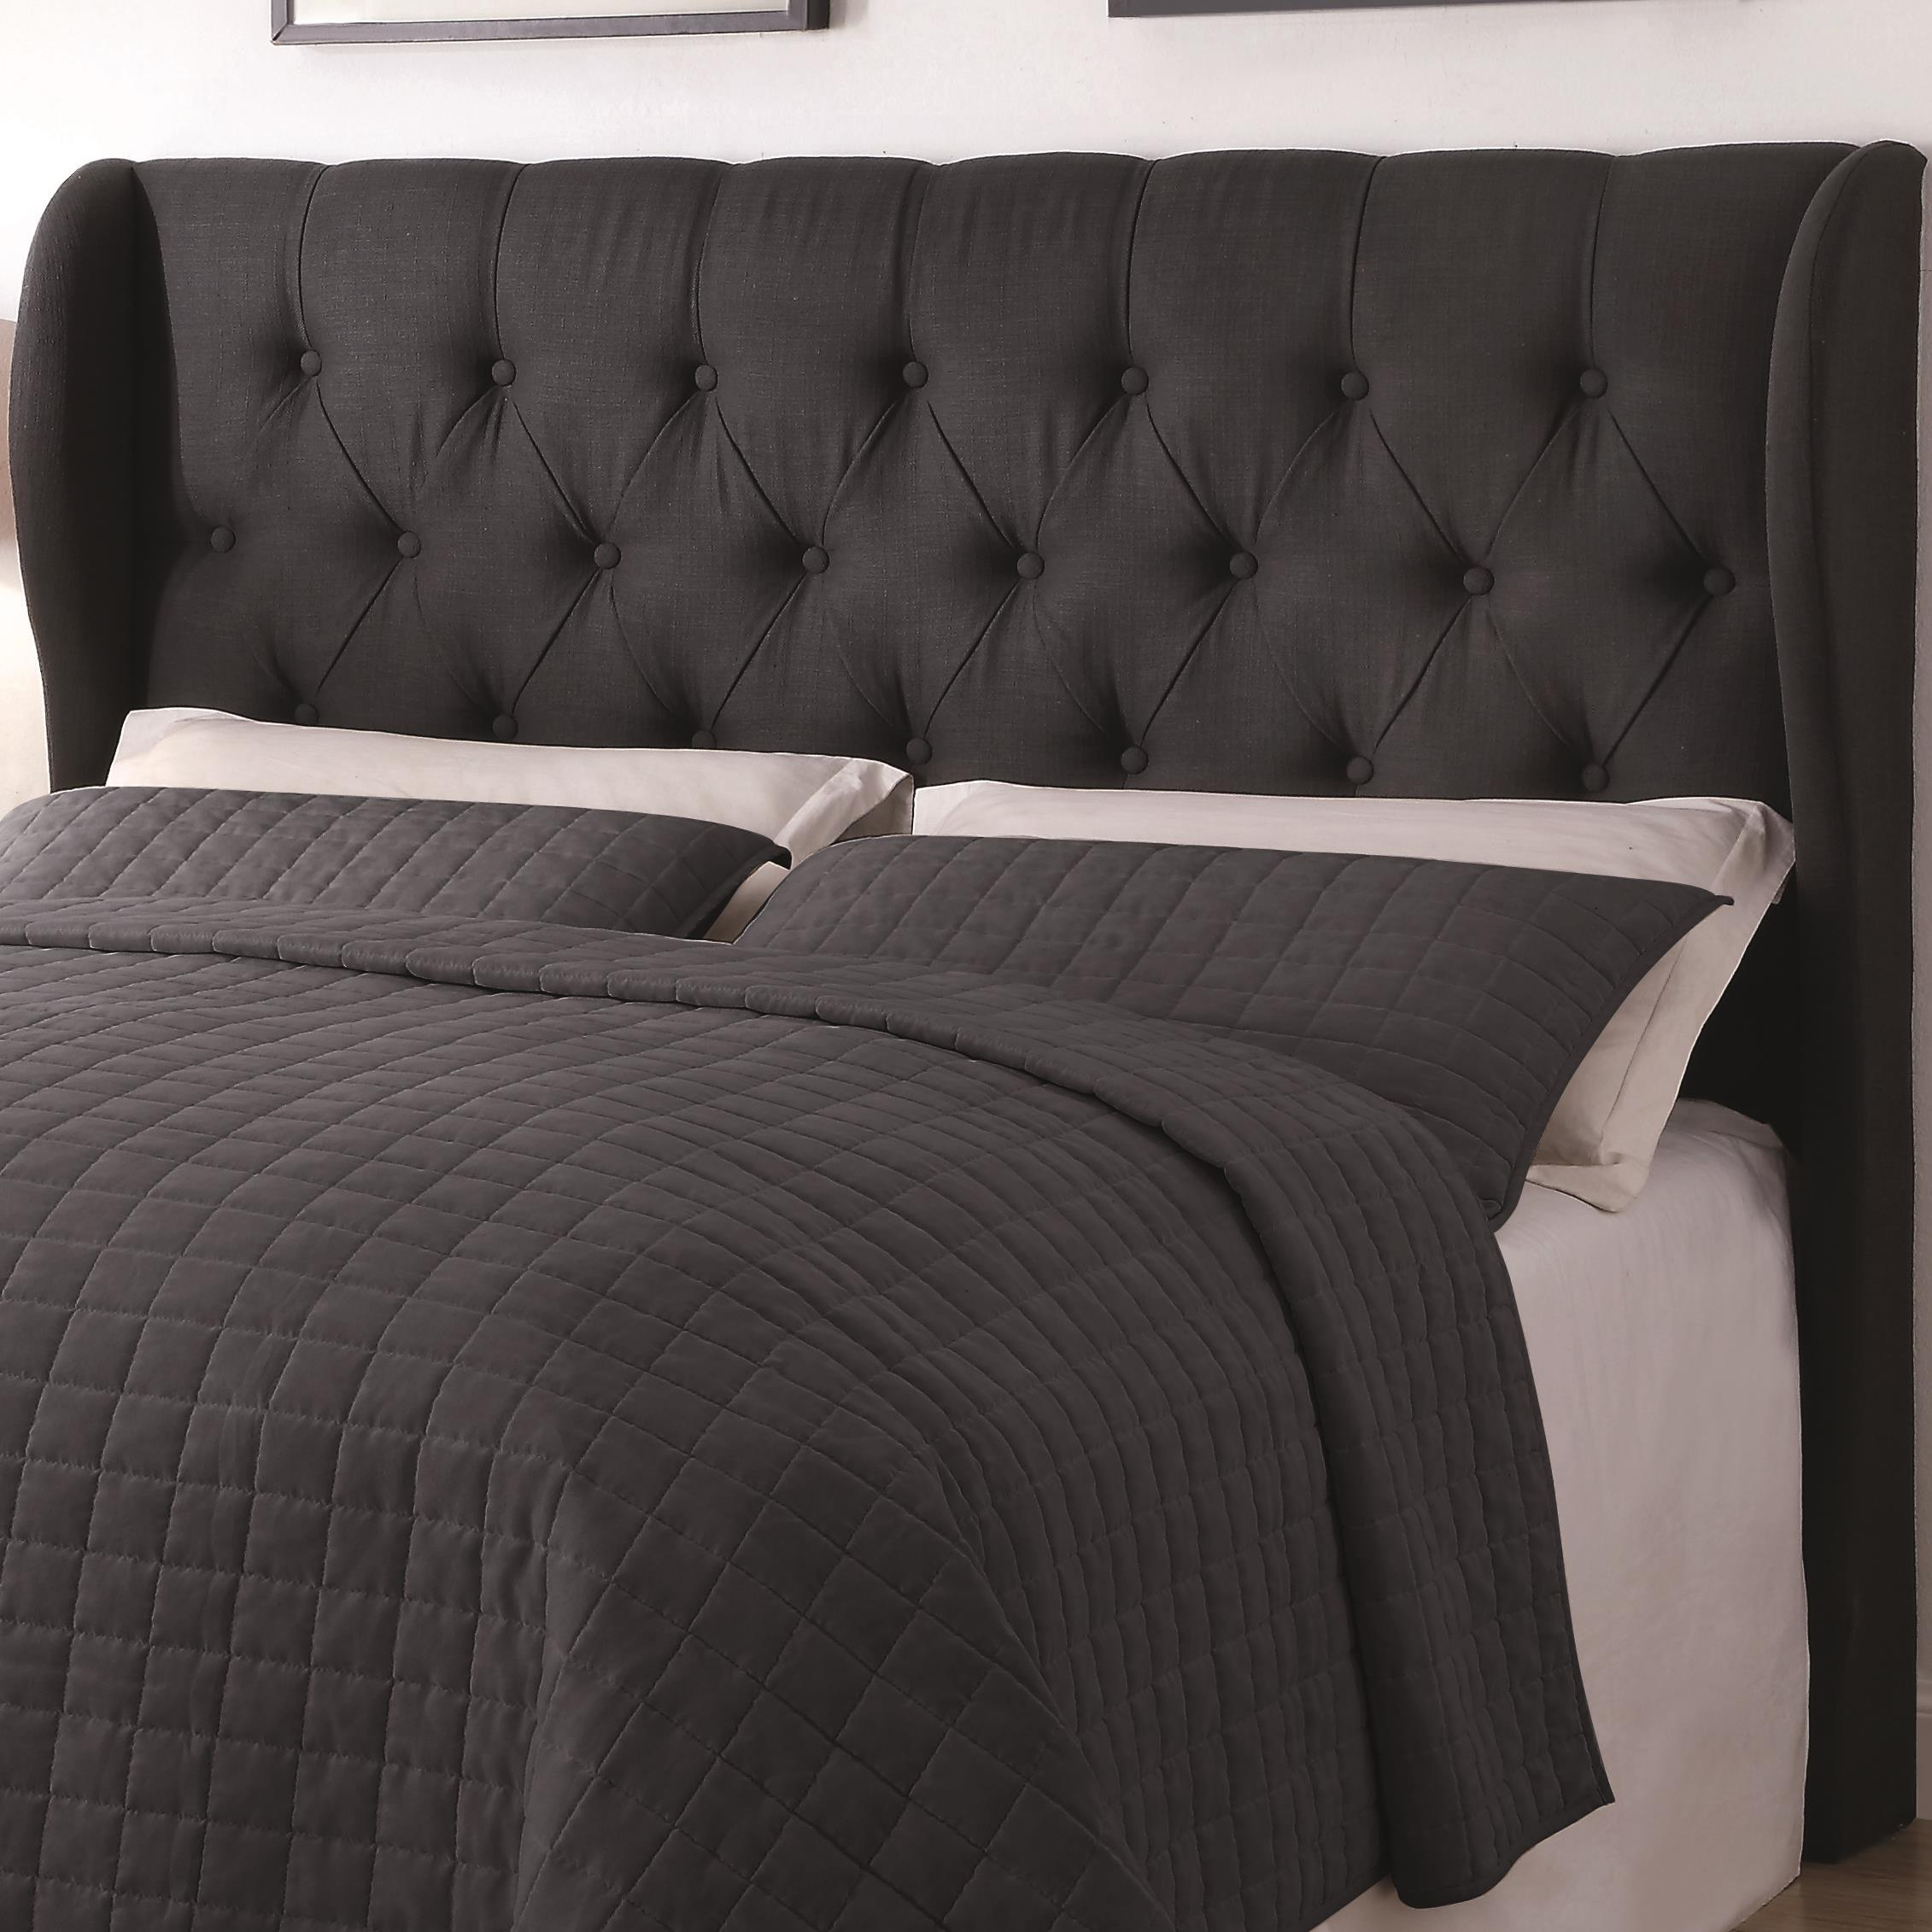 Coaster Upholstered Beds King/Cal King Murrieta Headboard - Item Number: 300445K